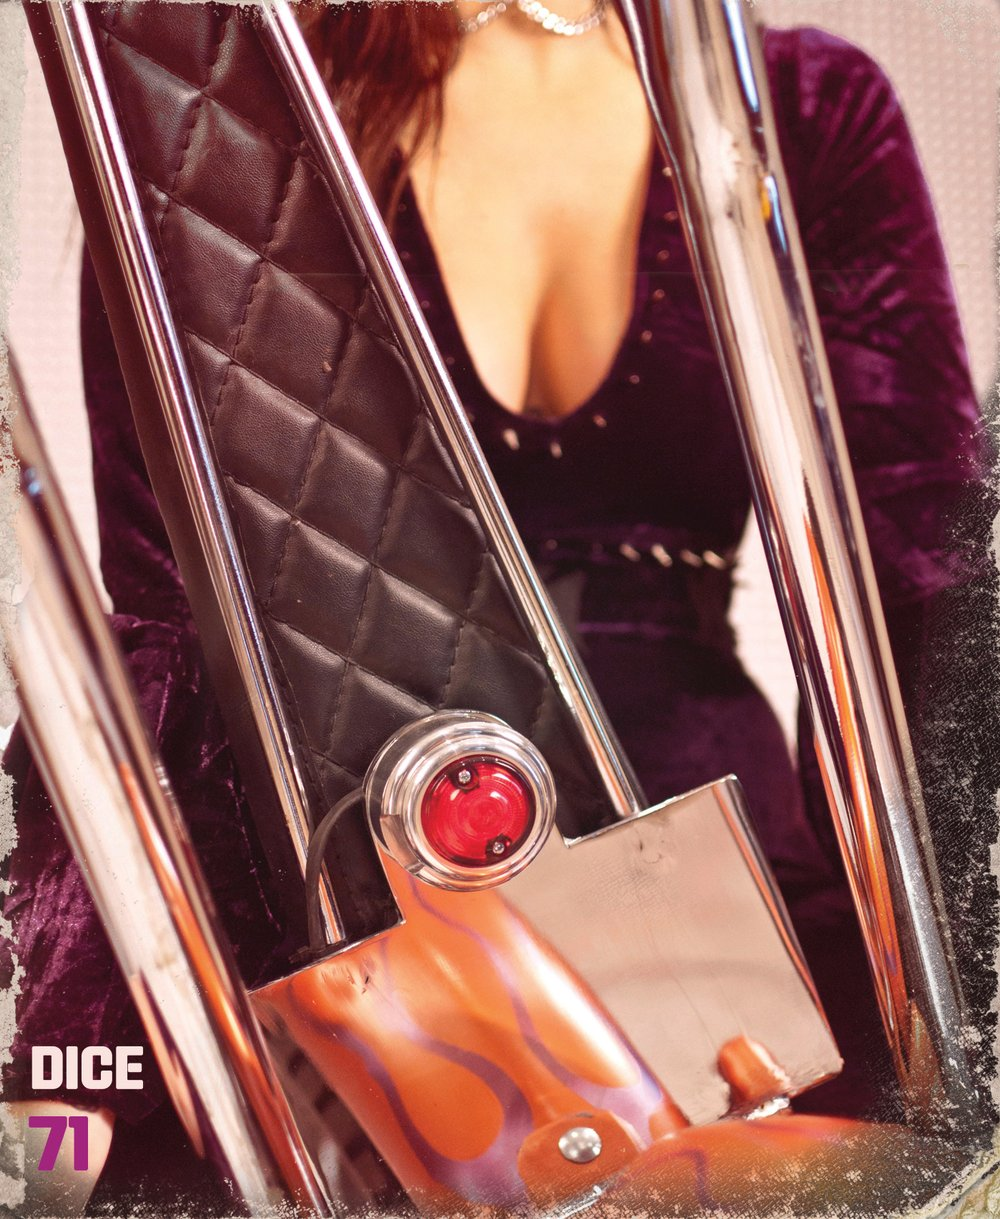 DicE Magazine - Issue 71